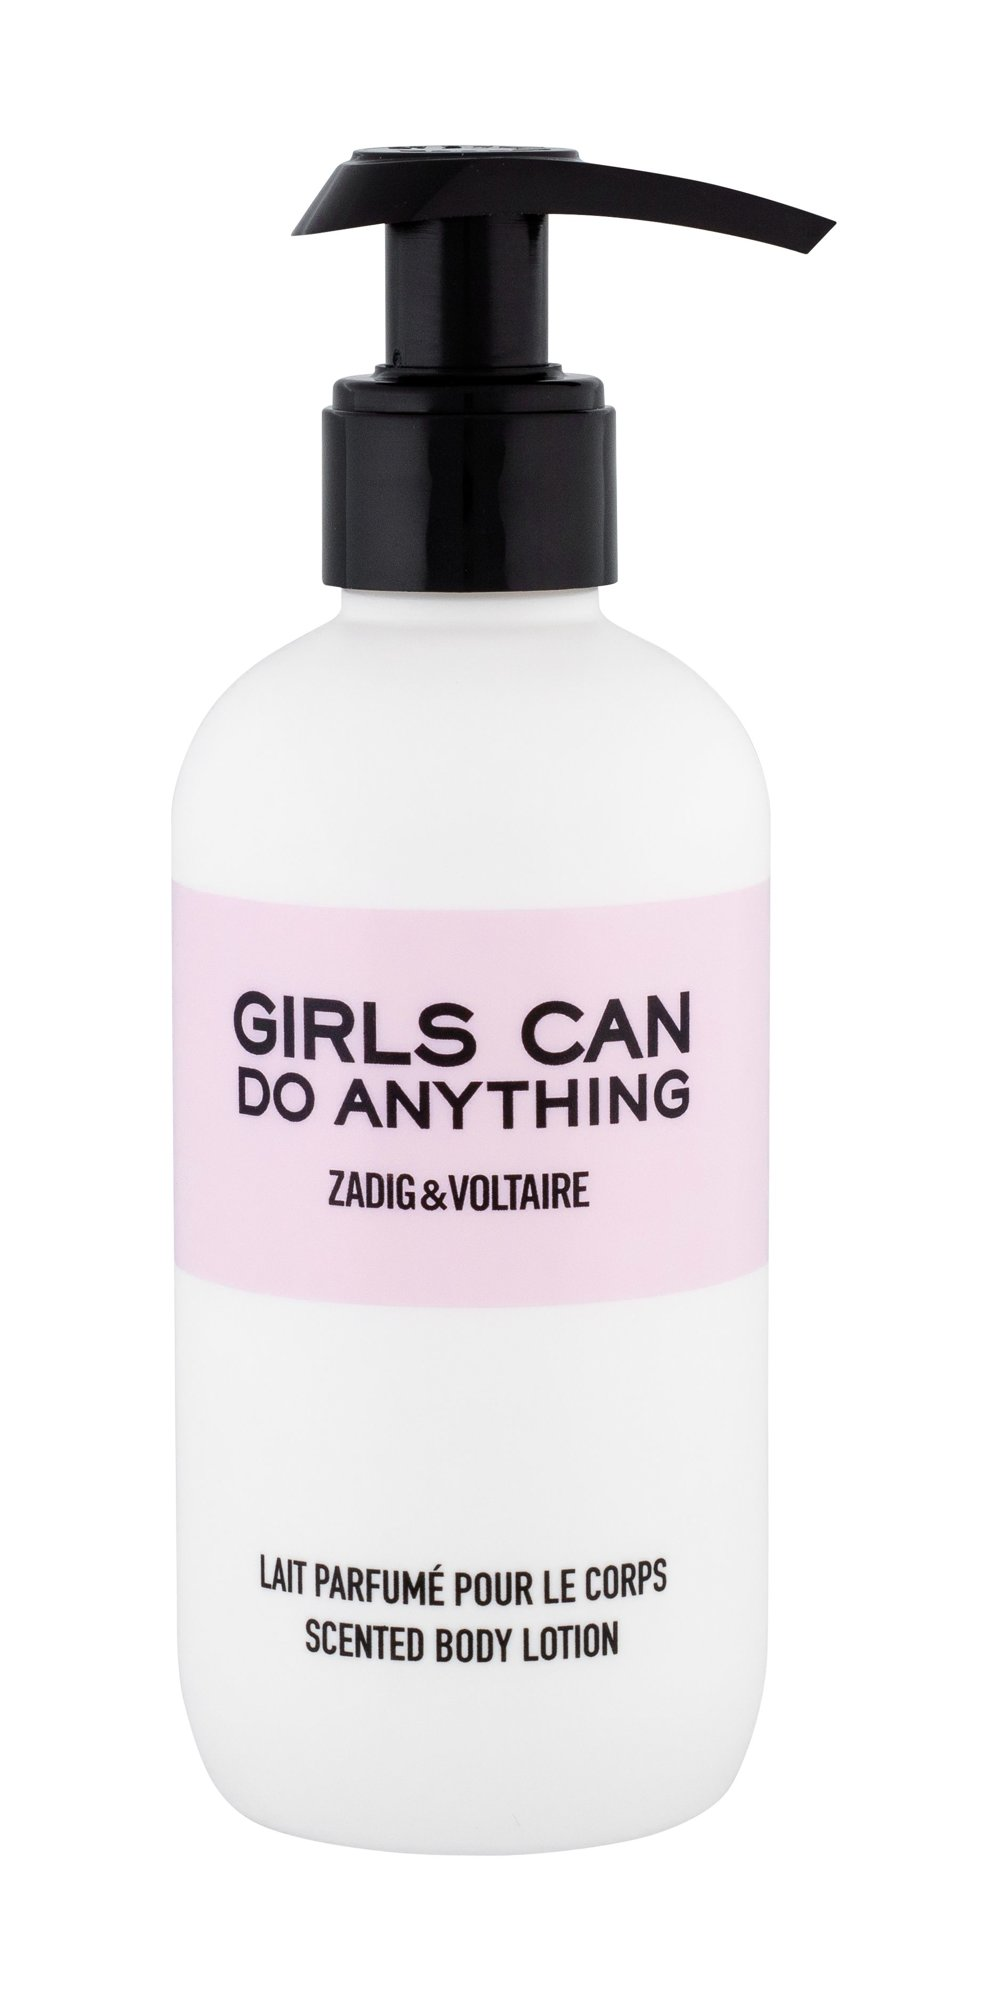 Zadig & Voltaire Girls Can Do Anything Body Lotion 200ml